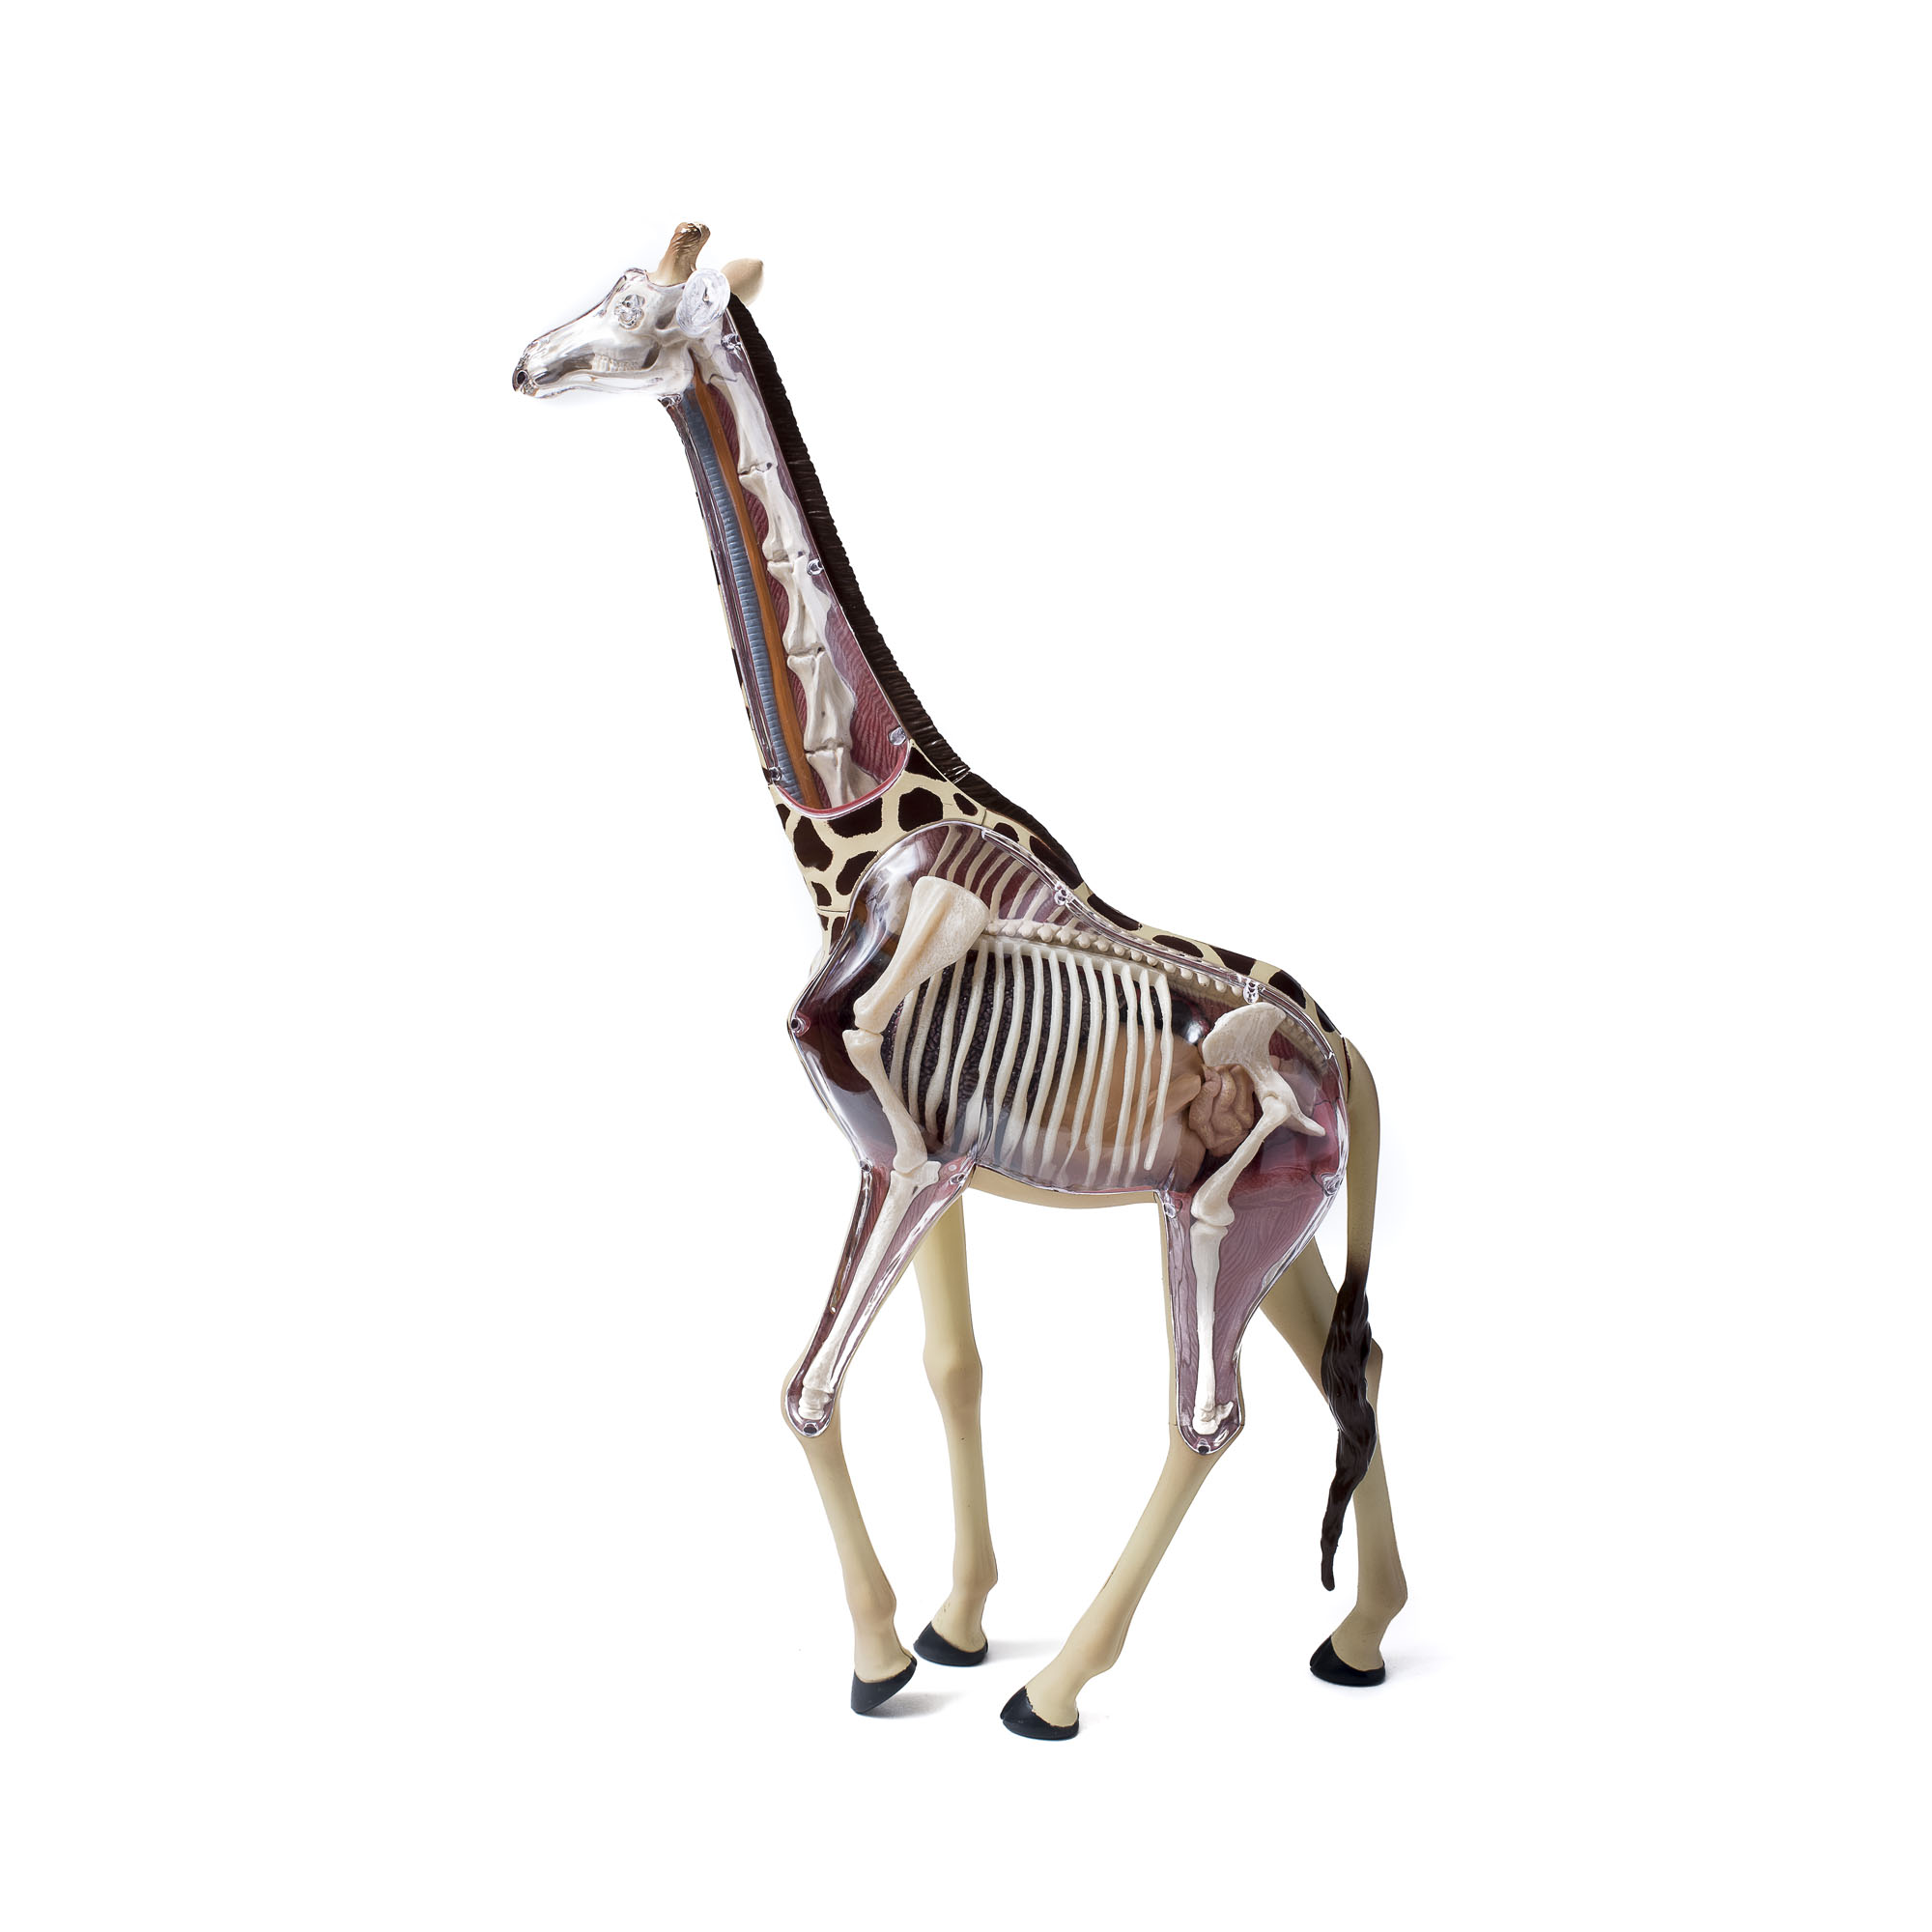 Giraffe anatomy model | ZSL Shop